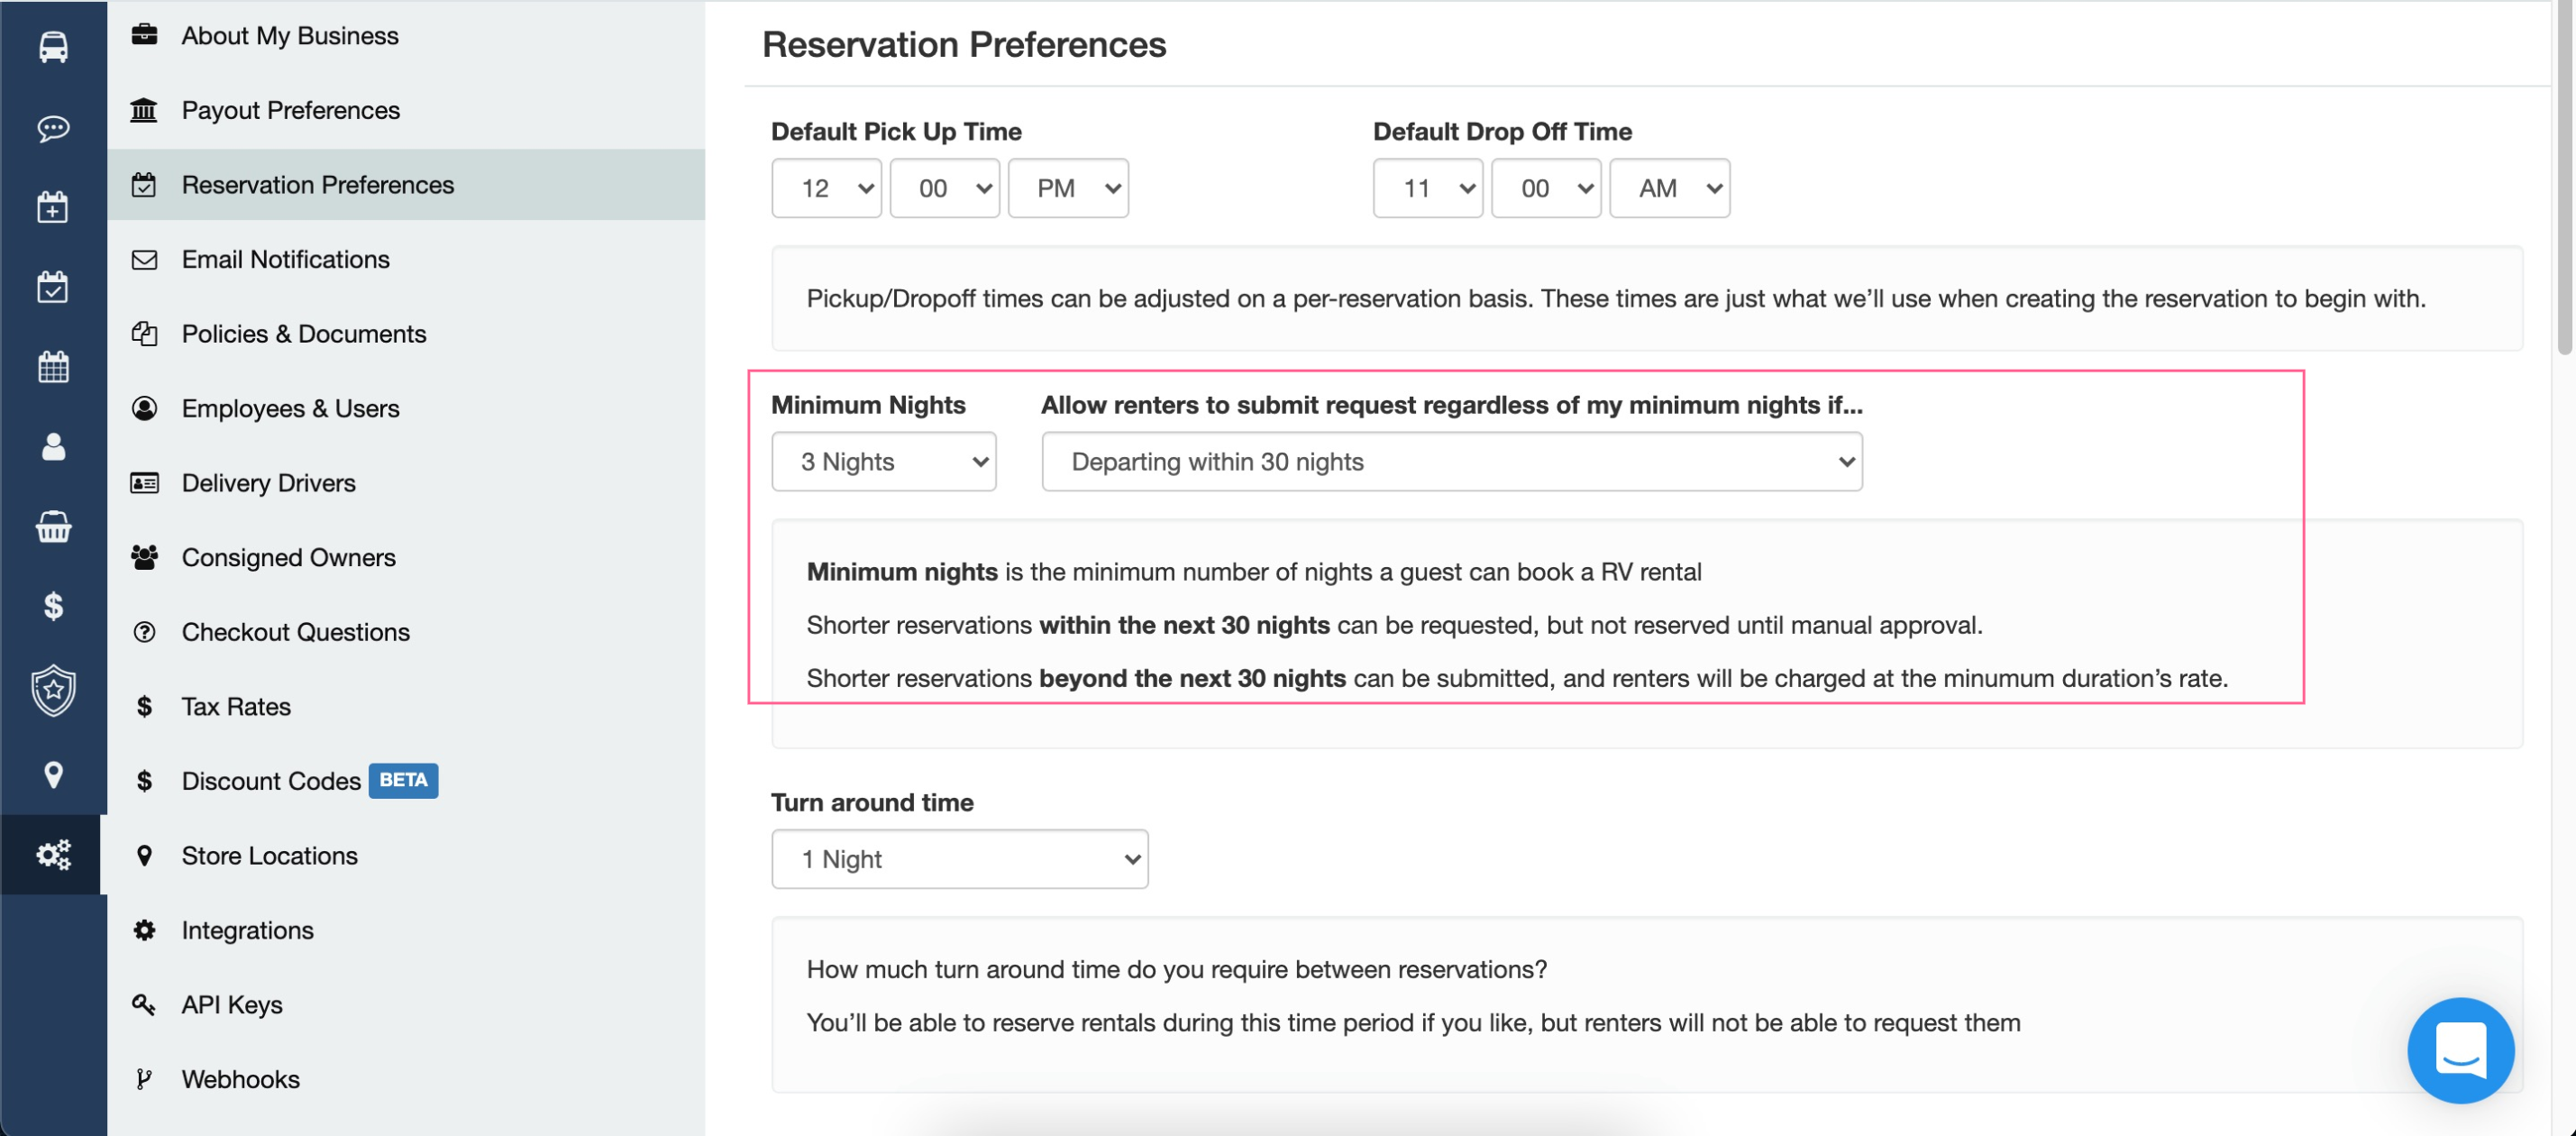 Reservation Preferences Account Wheelbase 2021-08-20 at 1.14.56 PM